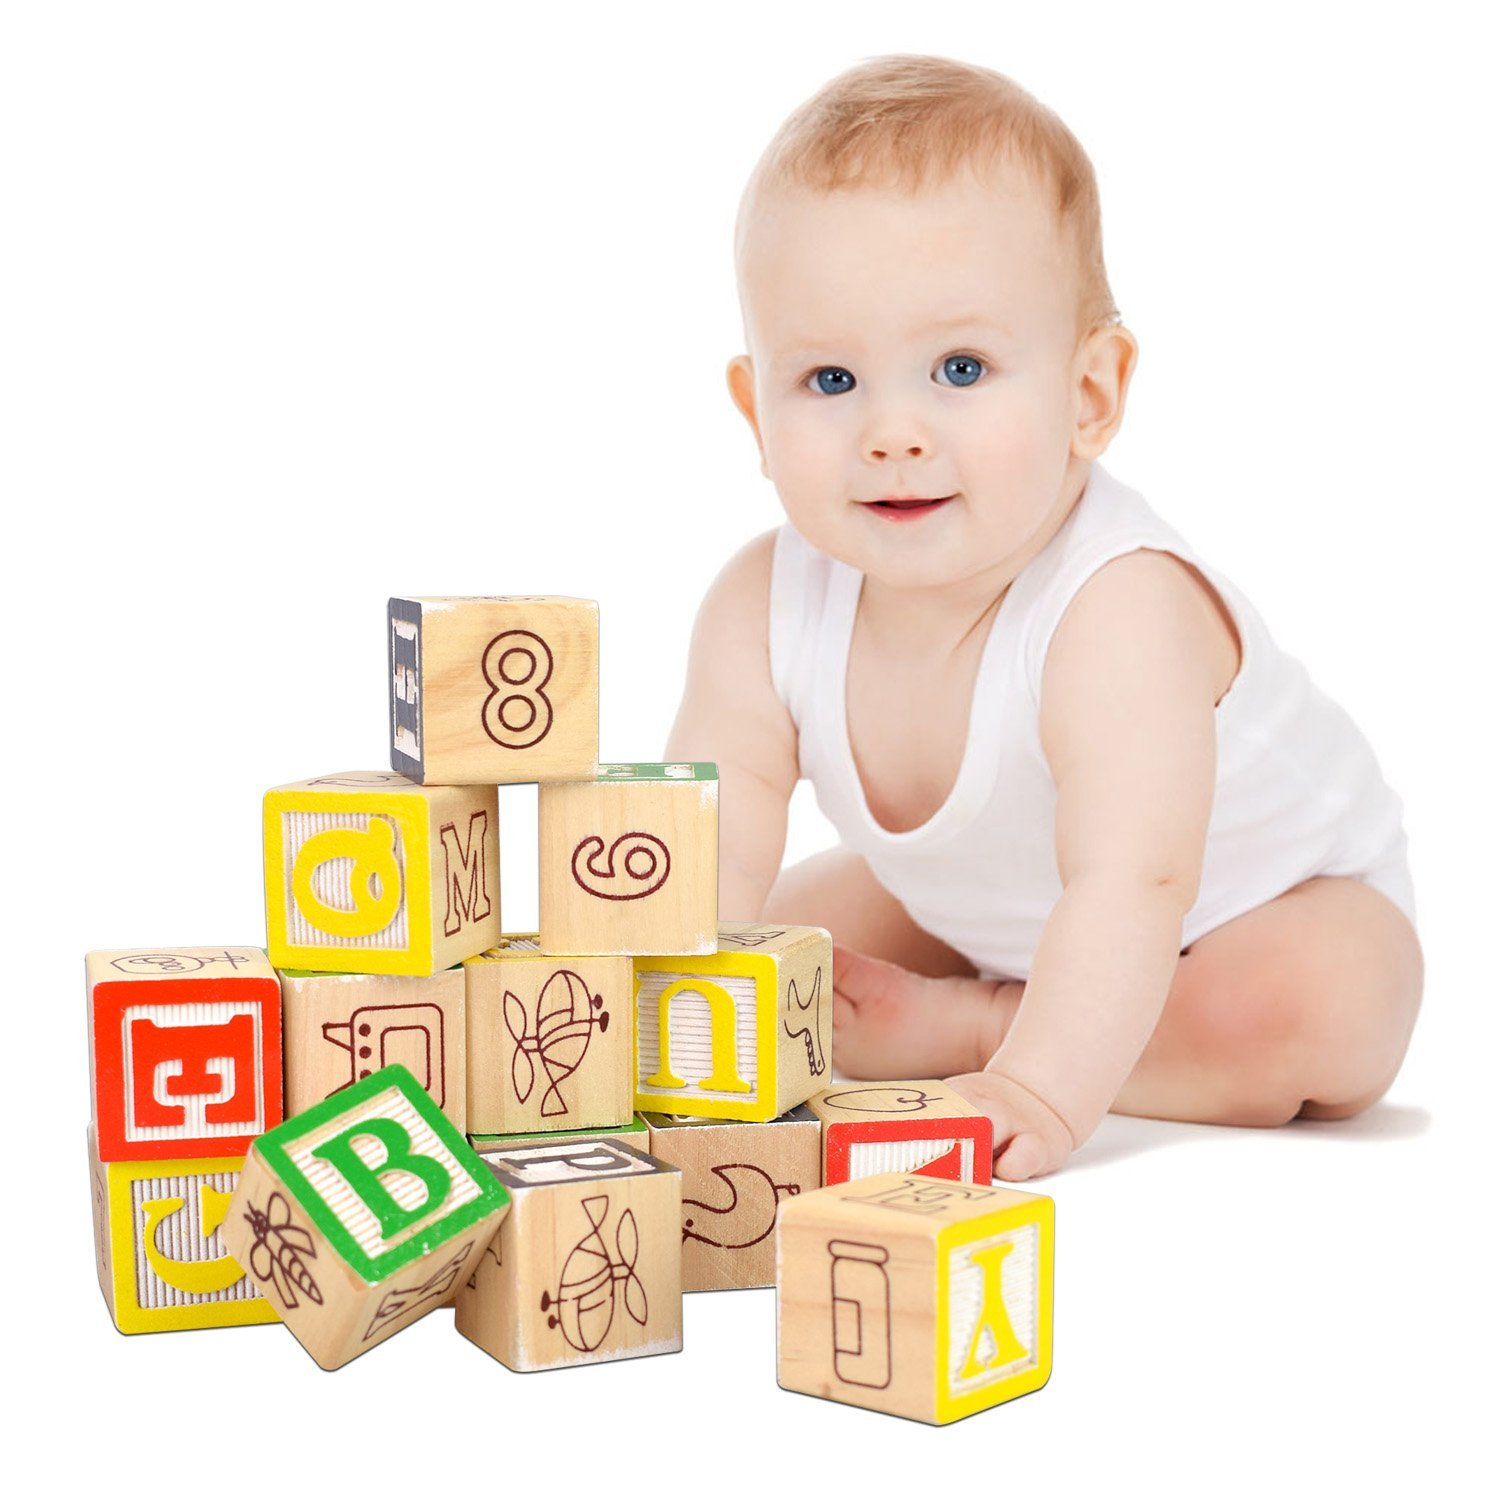 Buy Baztoy Wooden Building Blocks Toy Wood Alphabets Bricks Early